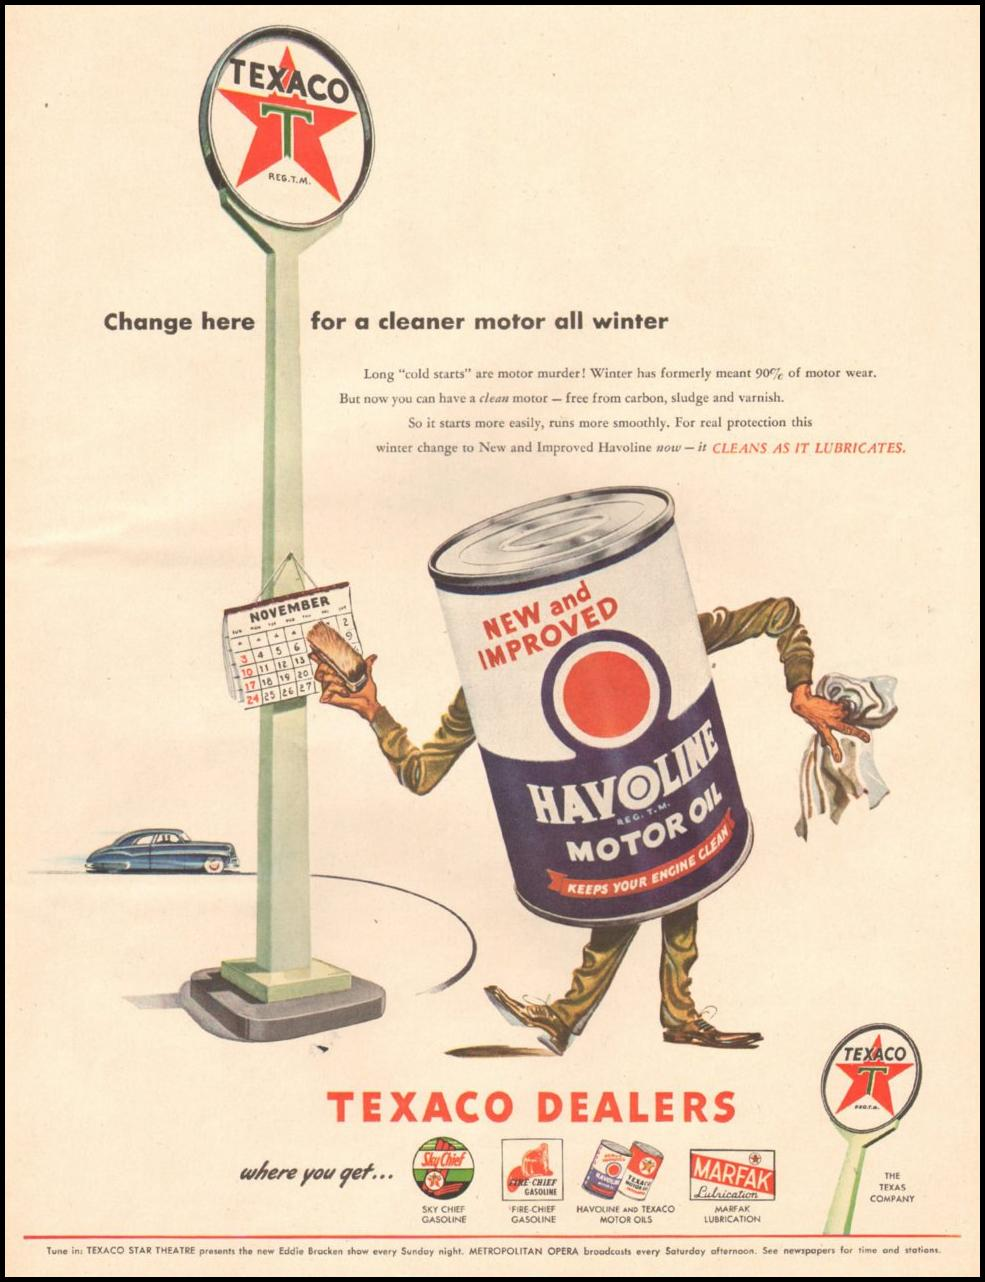 TEXACO HAVOLINE MOTOR OIL LIFE 11/25/1946